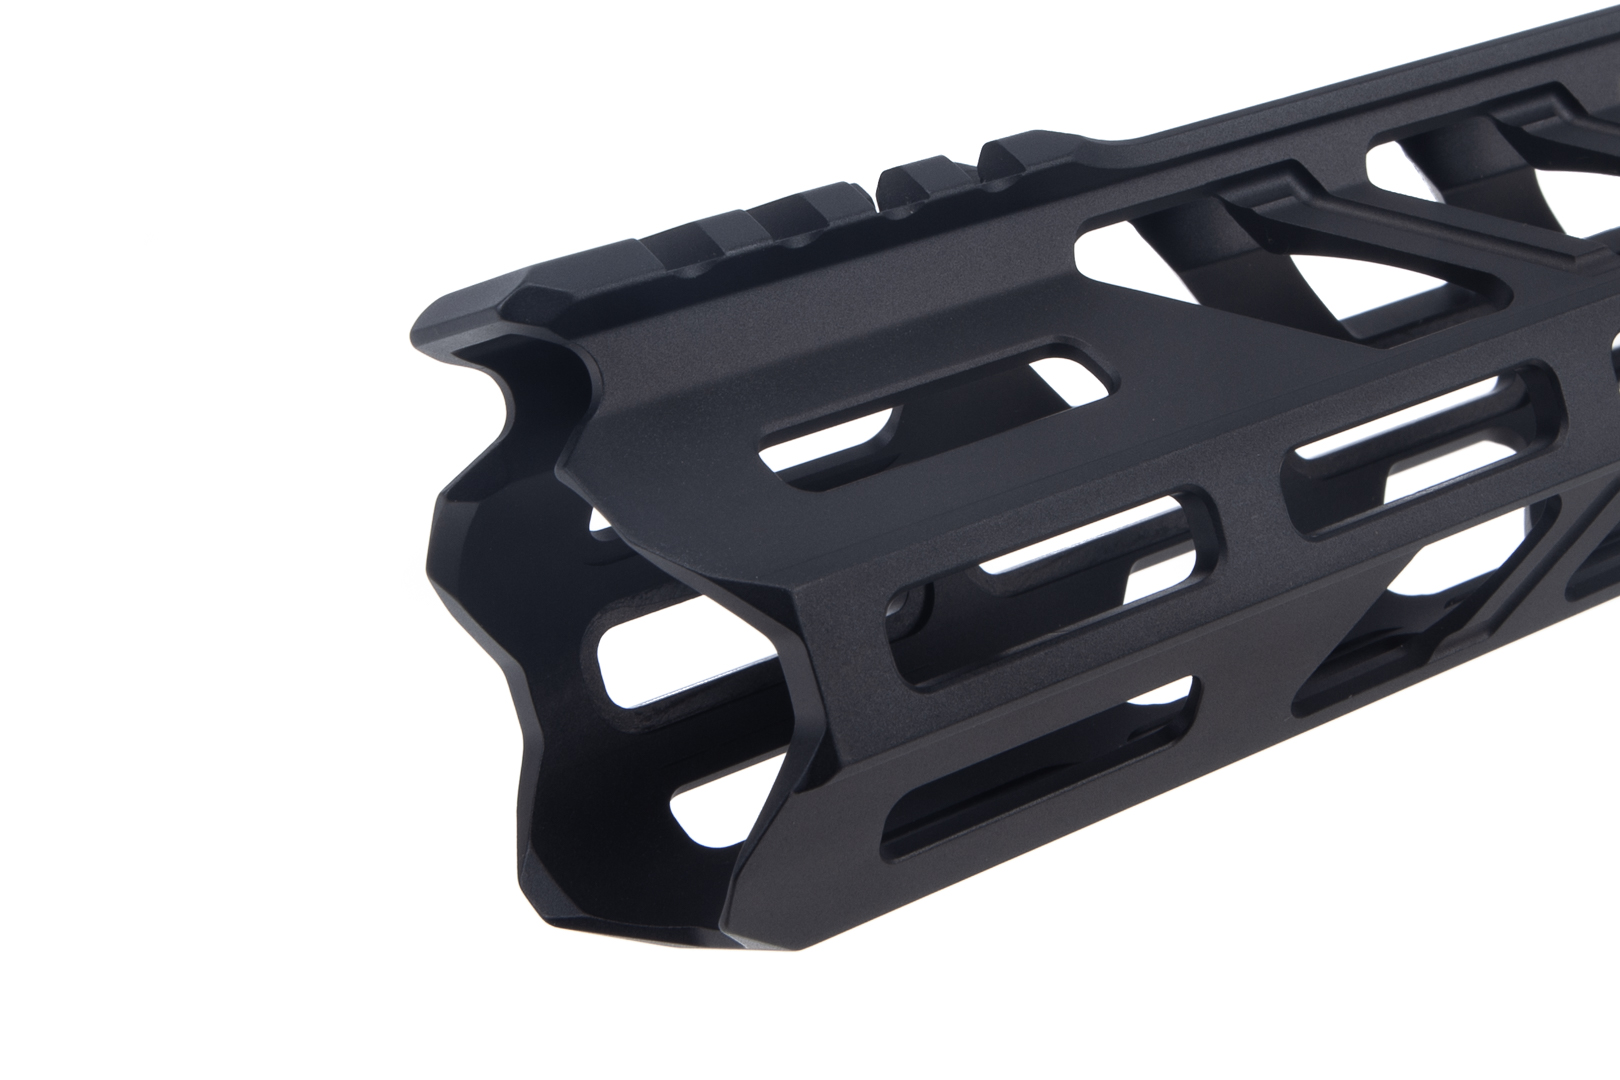 SWITCH™ 308 MOD 2 Rail System - 17